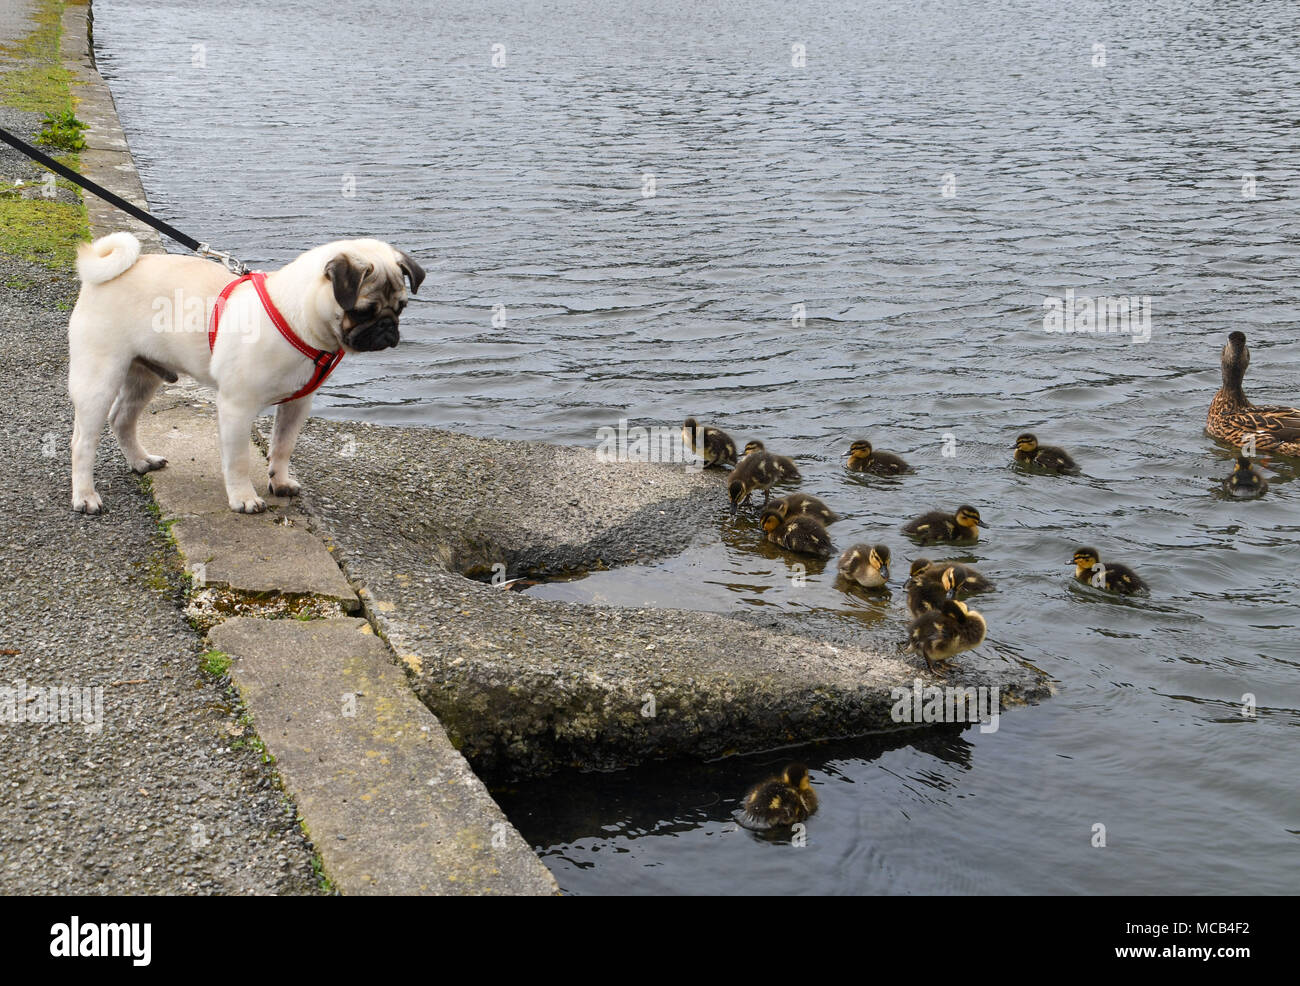 Helston Boating lake, Helston, Cornwall, UK. 15th April 2018. UK Weather. A warm afternoon in Helston, with a brood of 16 ducklings out and about on the boating lake. Seen here Titan the Pug pup having a good look. Credit: Simon Maycock/Alamy Live News - Stock Image